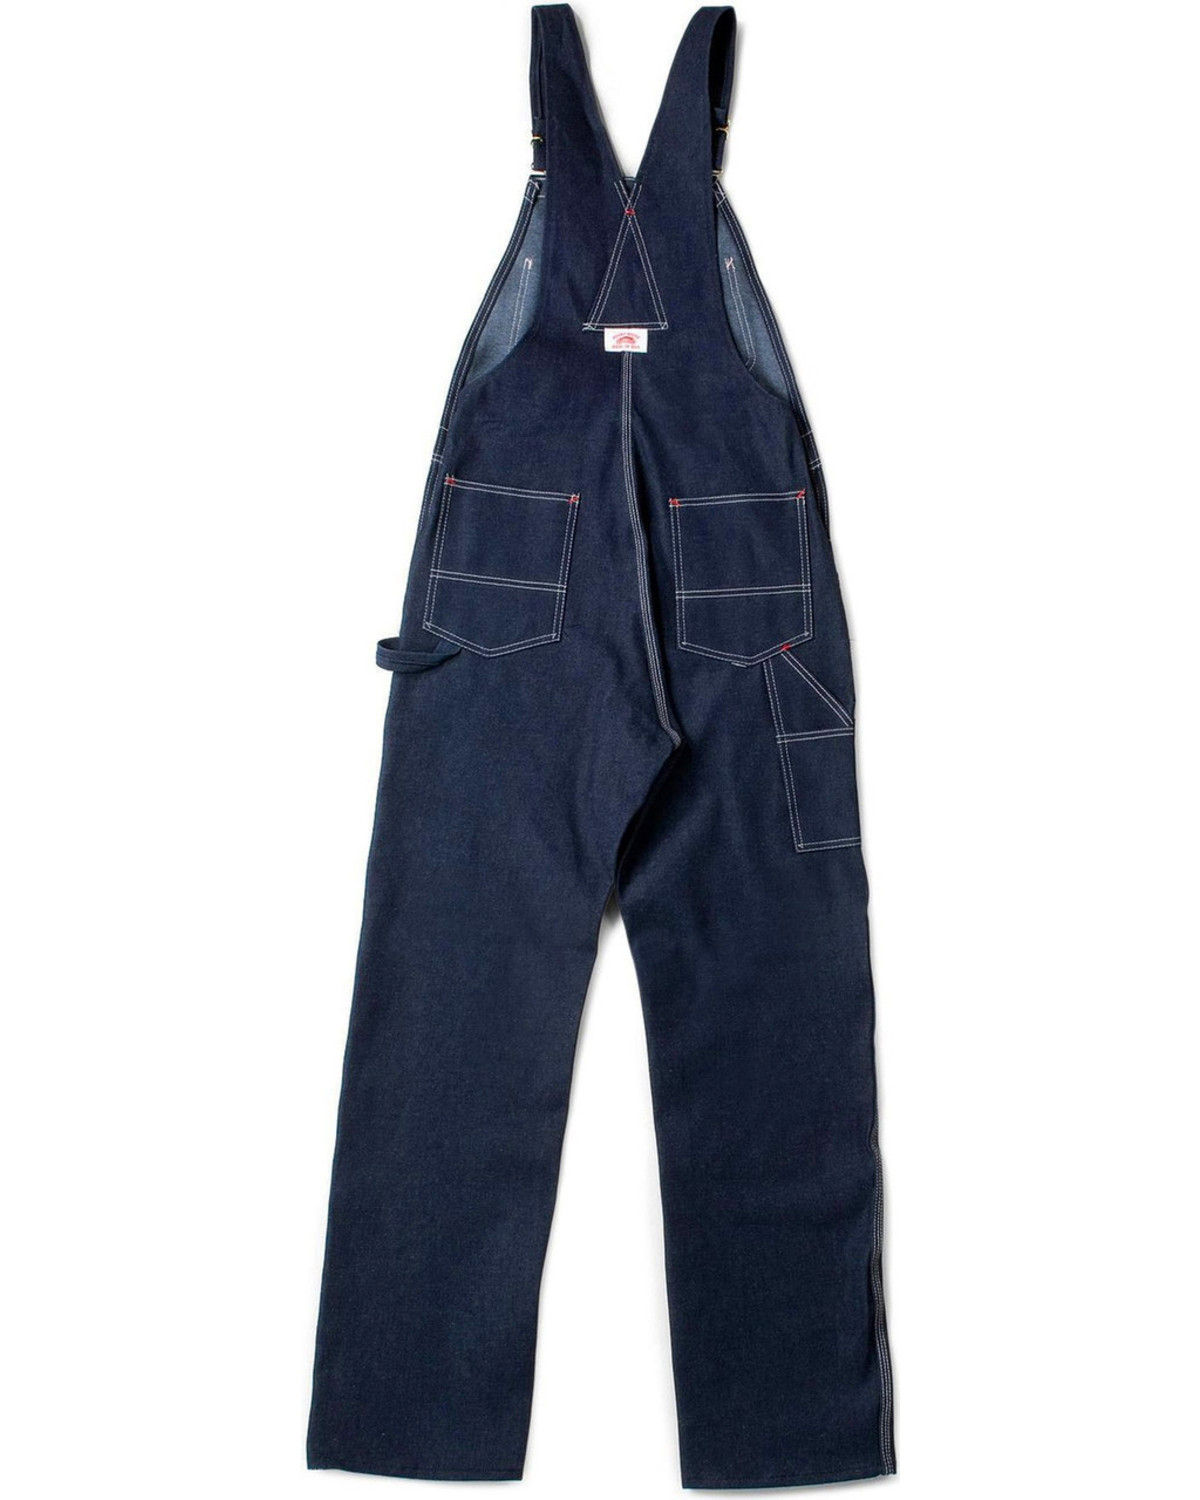 Round house men 39 s blue classic fly bib overalls big boot barn - Roundhouse bib overalls ...